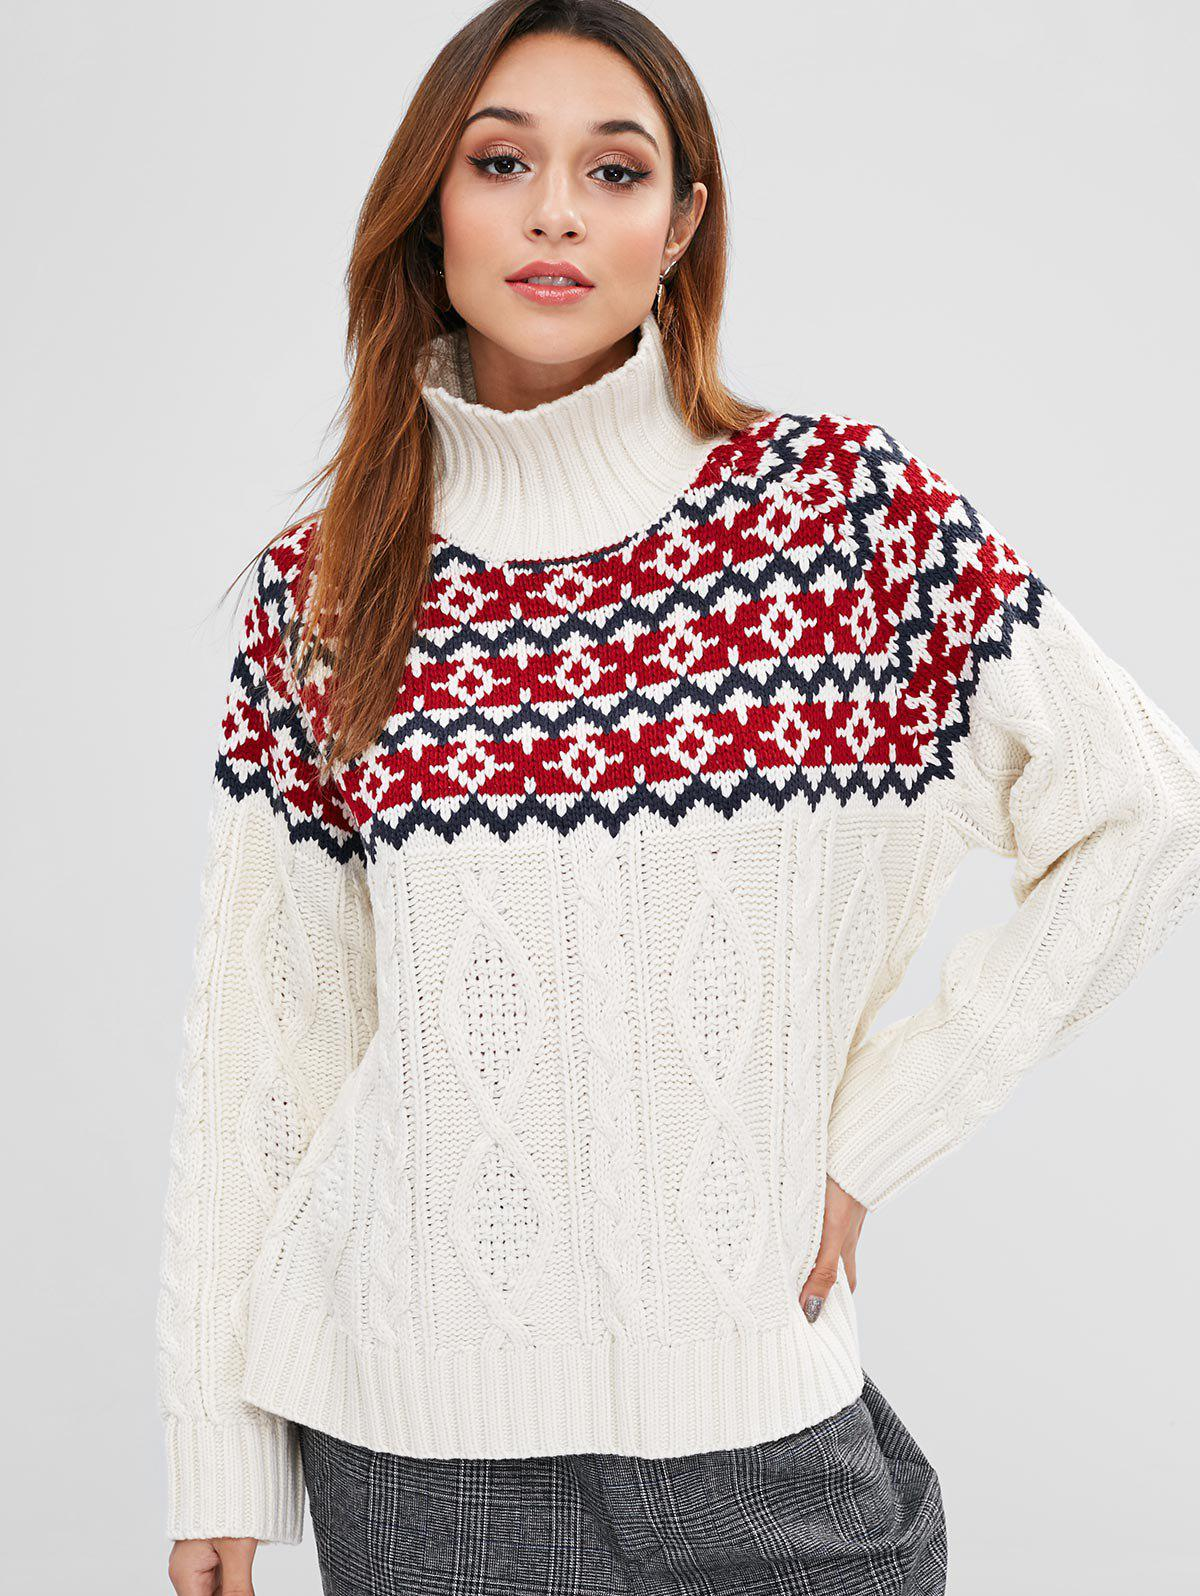 ZAFUL Cable Knit Turtleneck Graphic Sweater